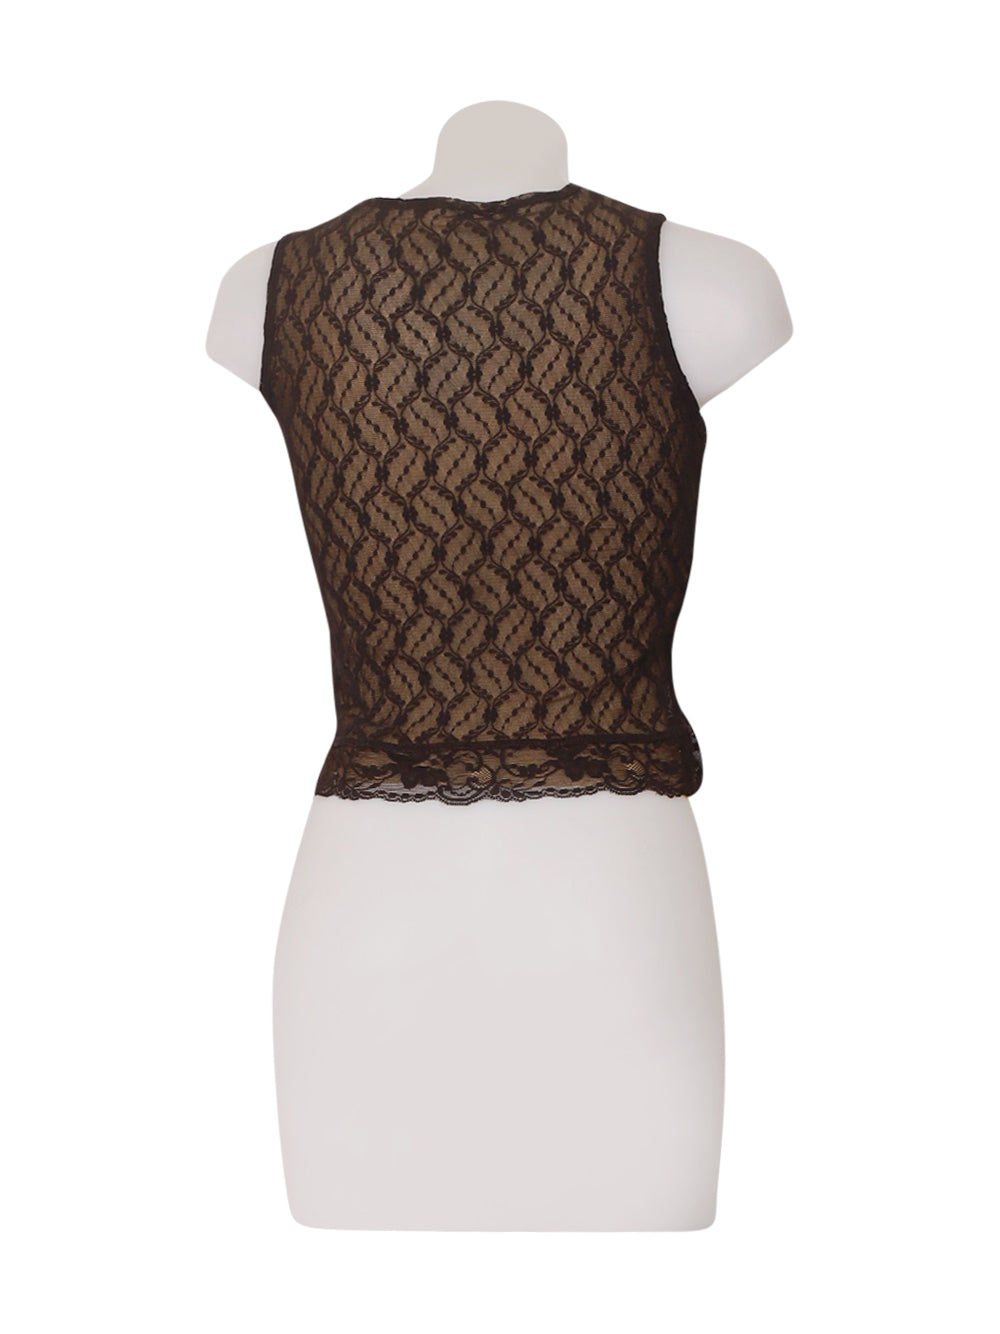 Back photo of Preloved Phard Brown Woman's sleeveless top - size 10/M